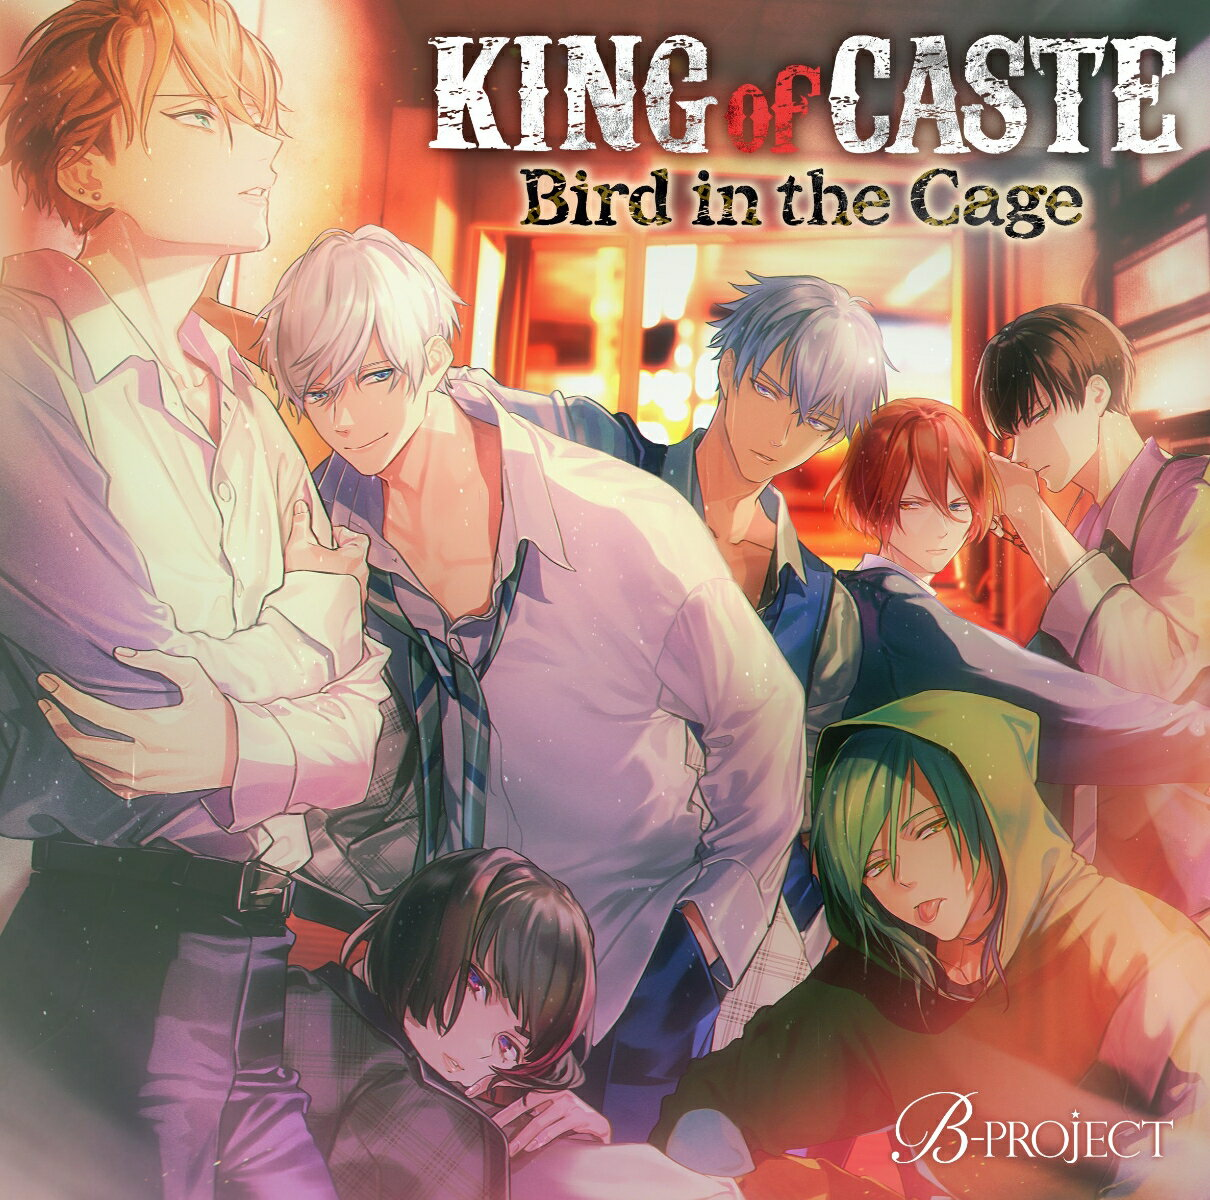 CD, アニメ KING of CASTE Bird in the Cage ver( 2CD) B-PROJECT